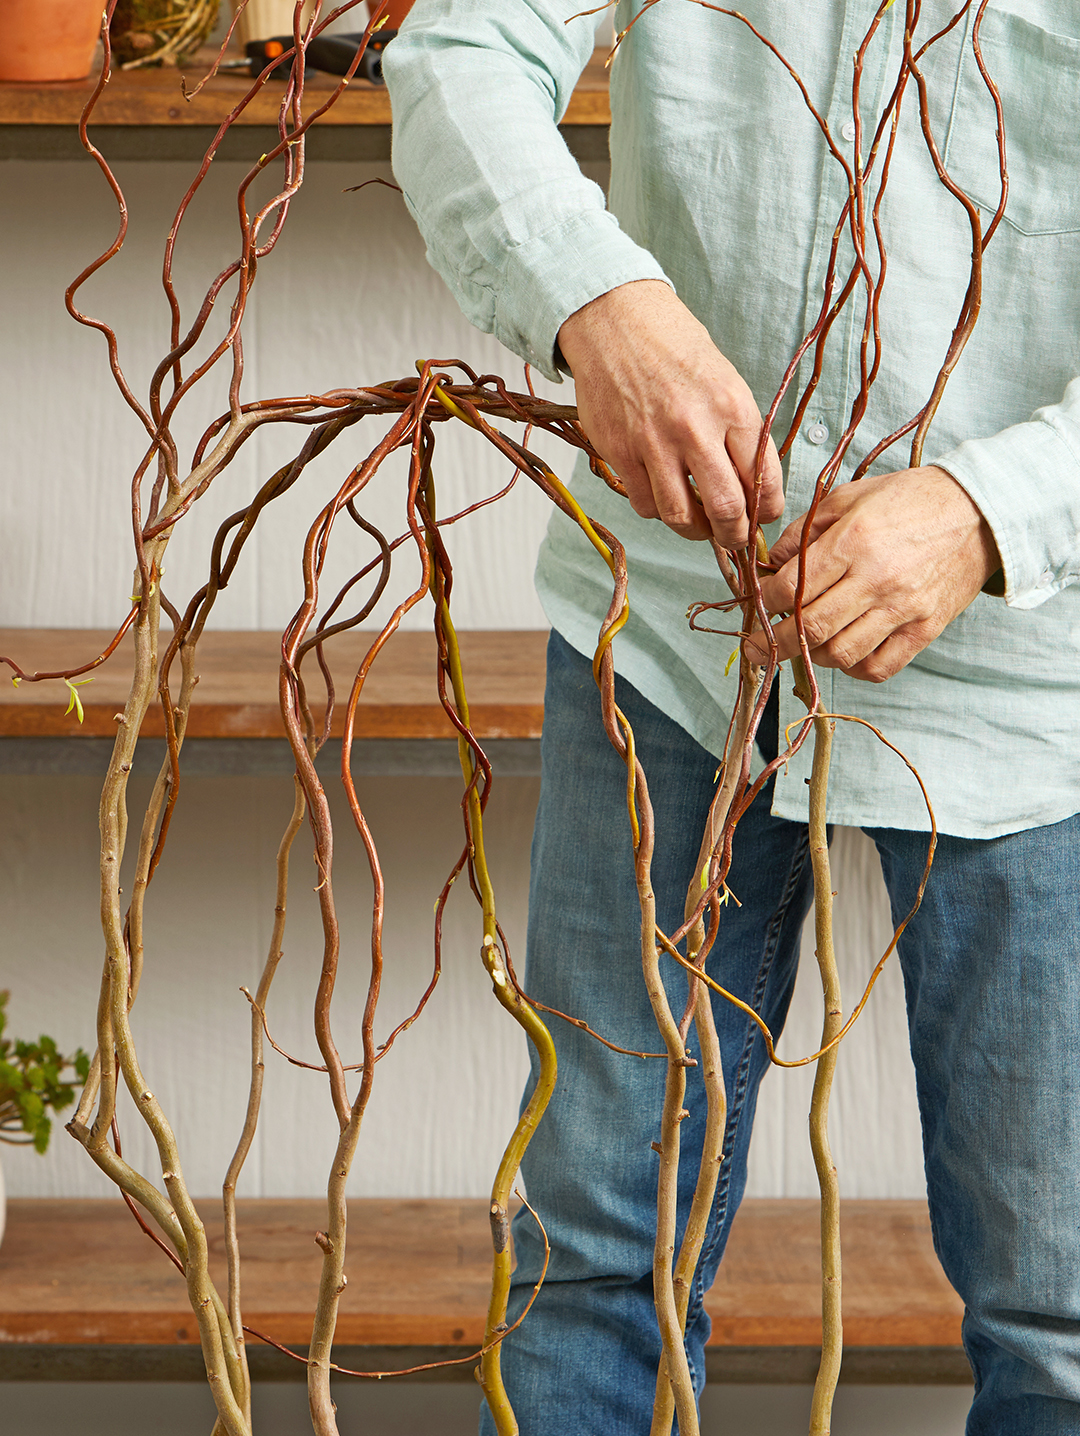 wrapping willow branches together and tying them